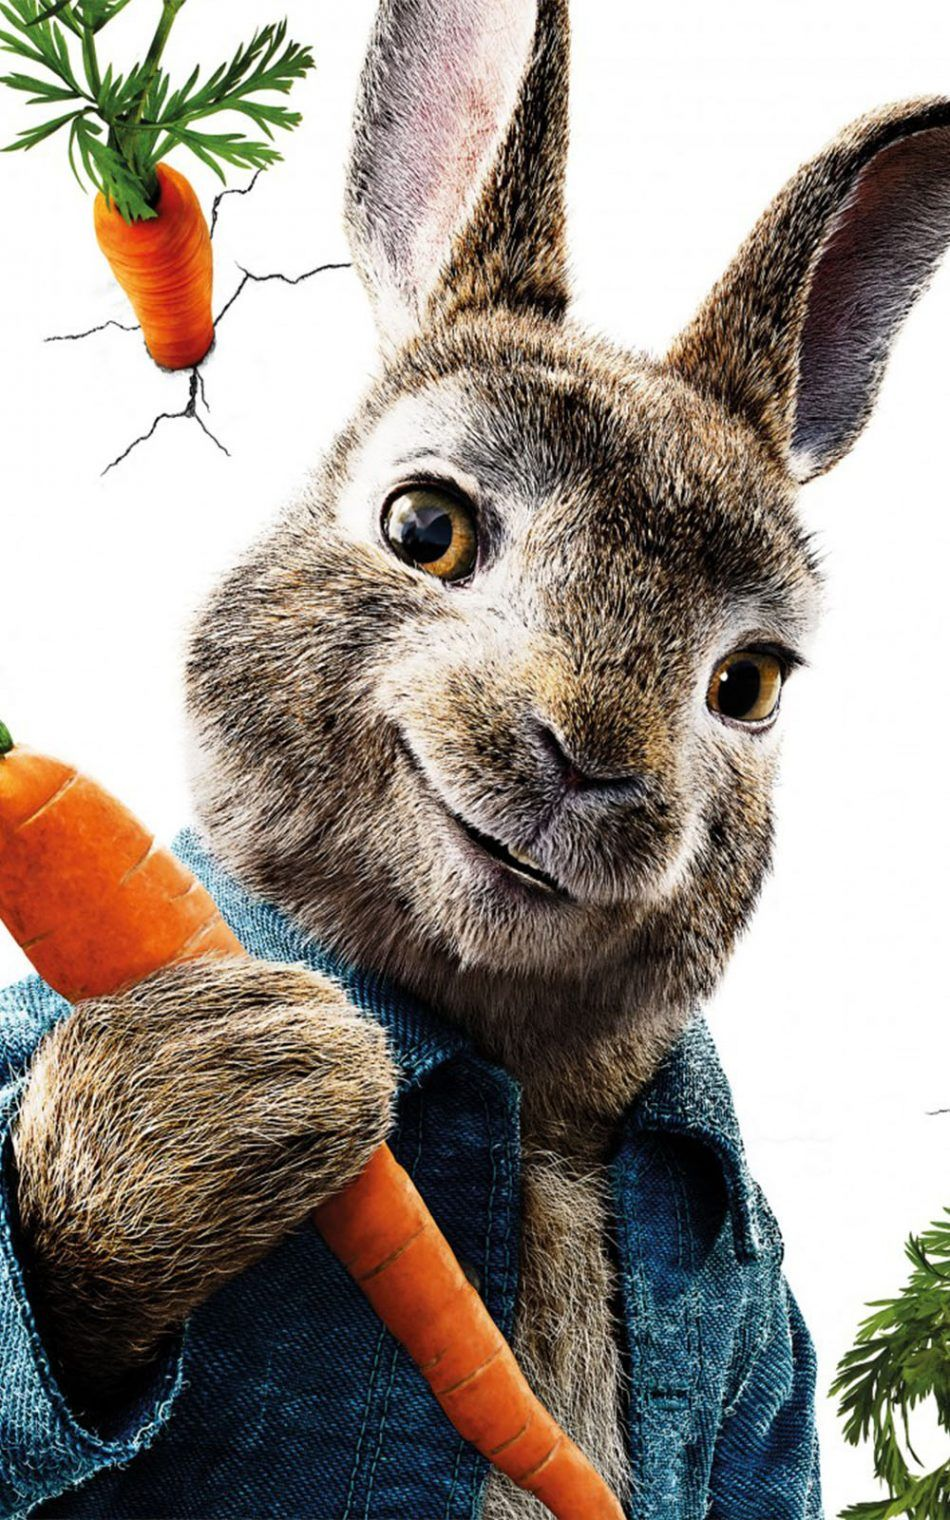 950x1520 Free download Download Peter Rabbit Movie Pure 4K Ultra HD ...